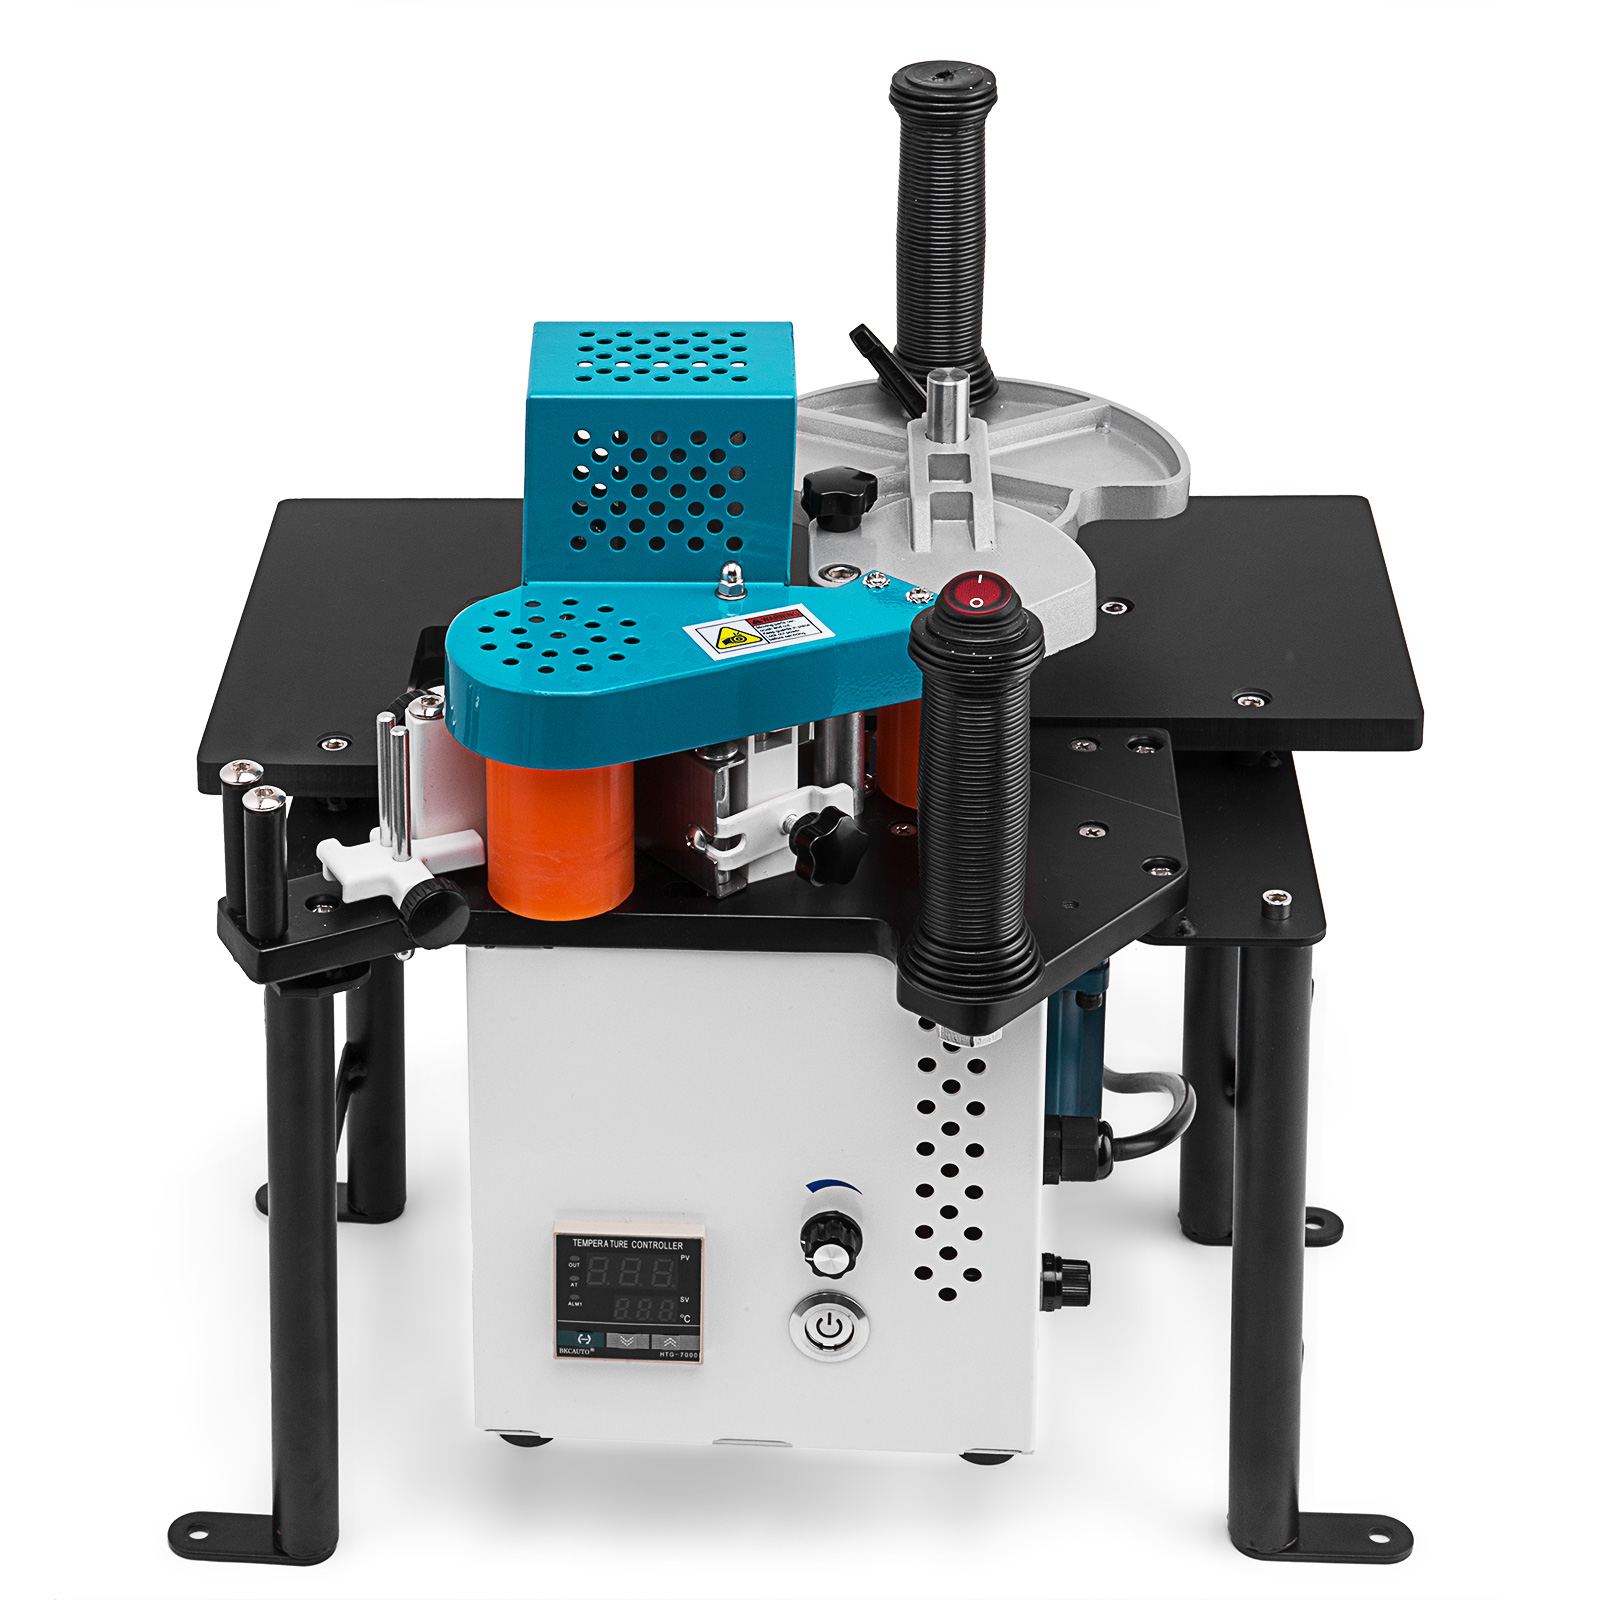 Details about Woodworking Portable Edge Banding Machine 0 3-3mm Thick Wood  Working 15W Motor